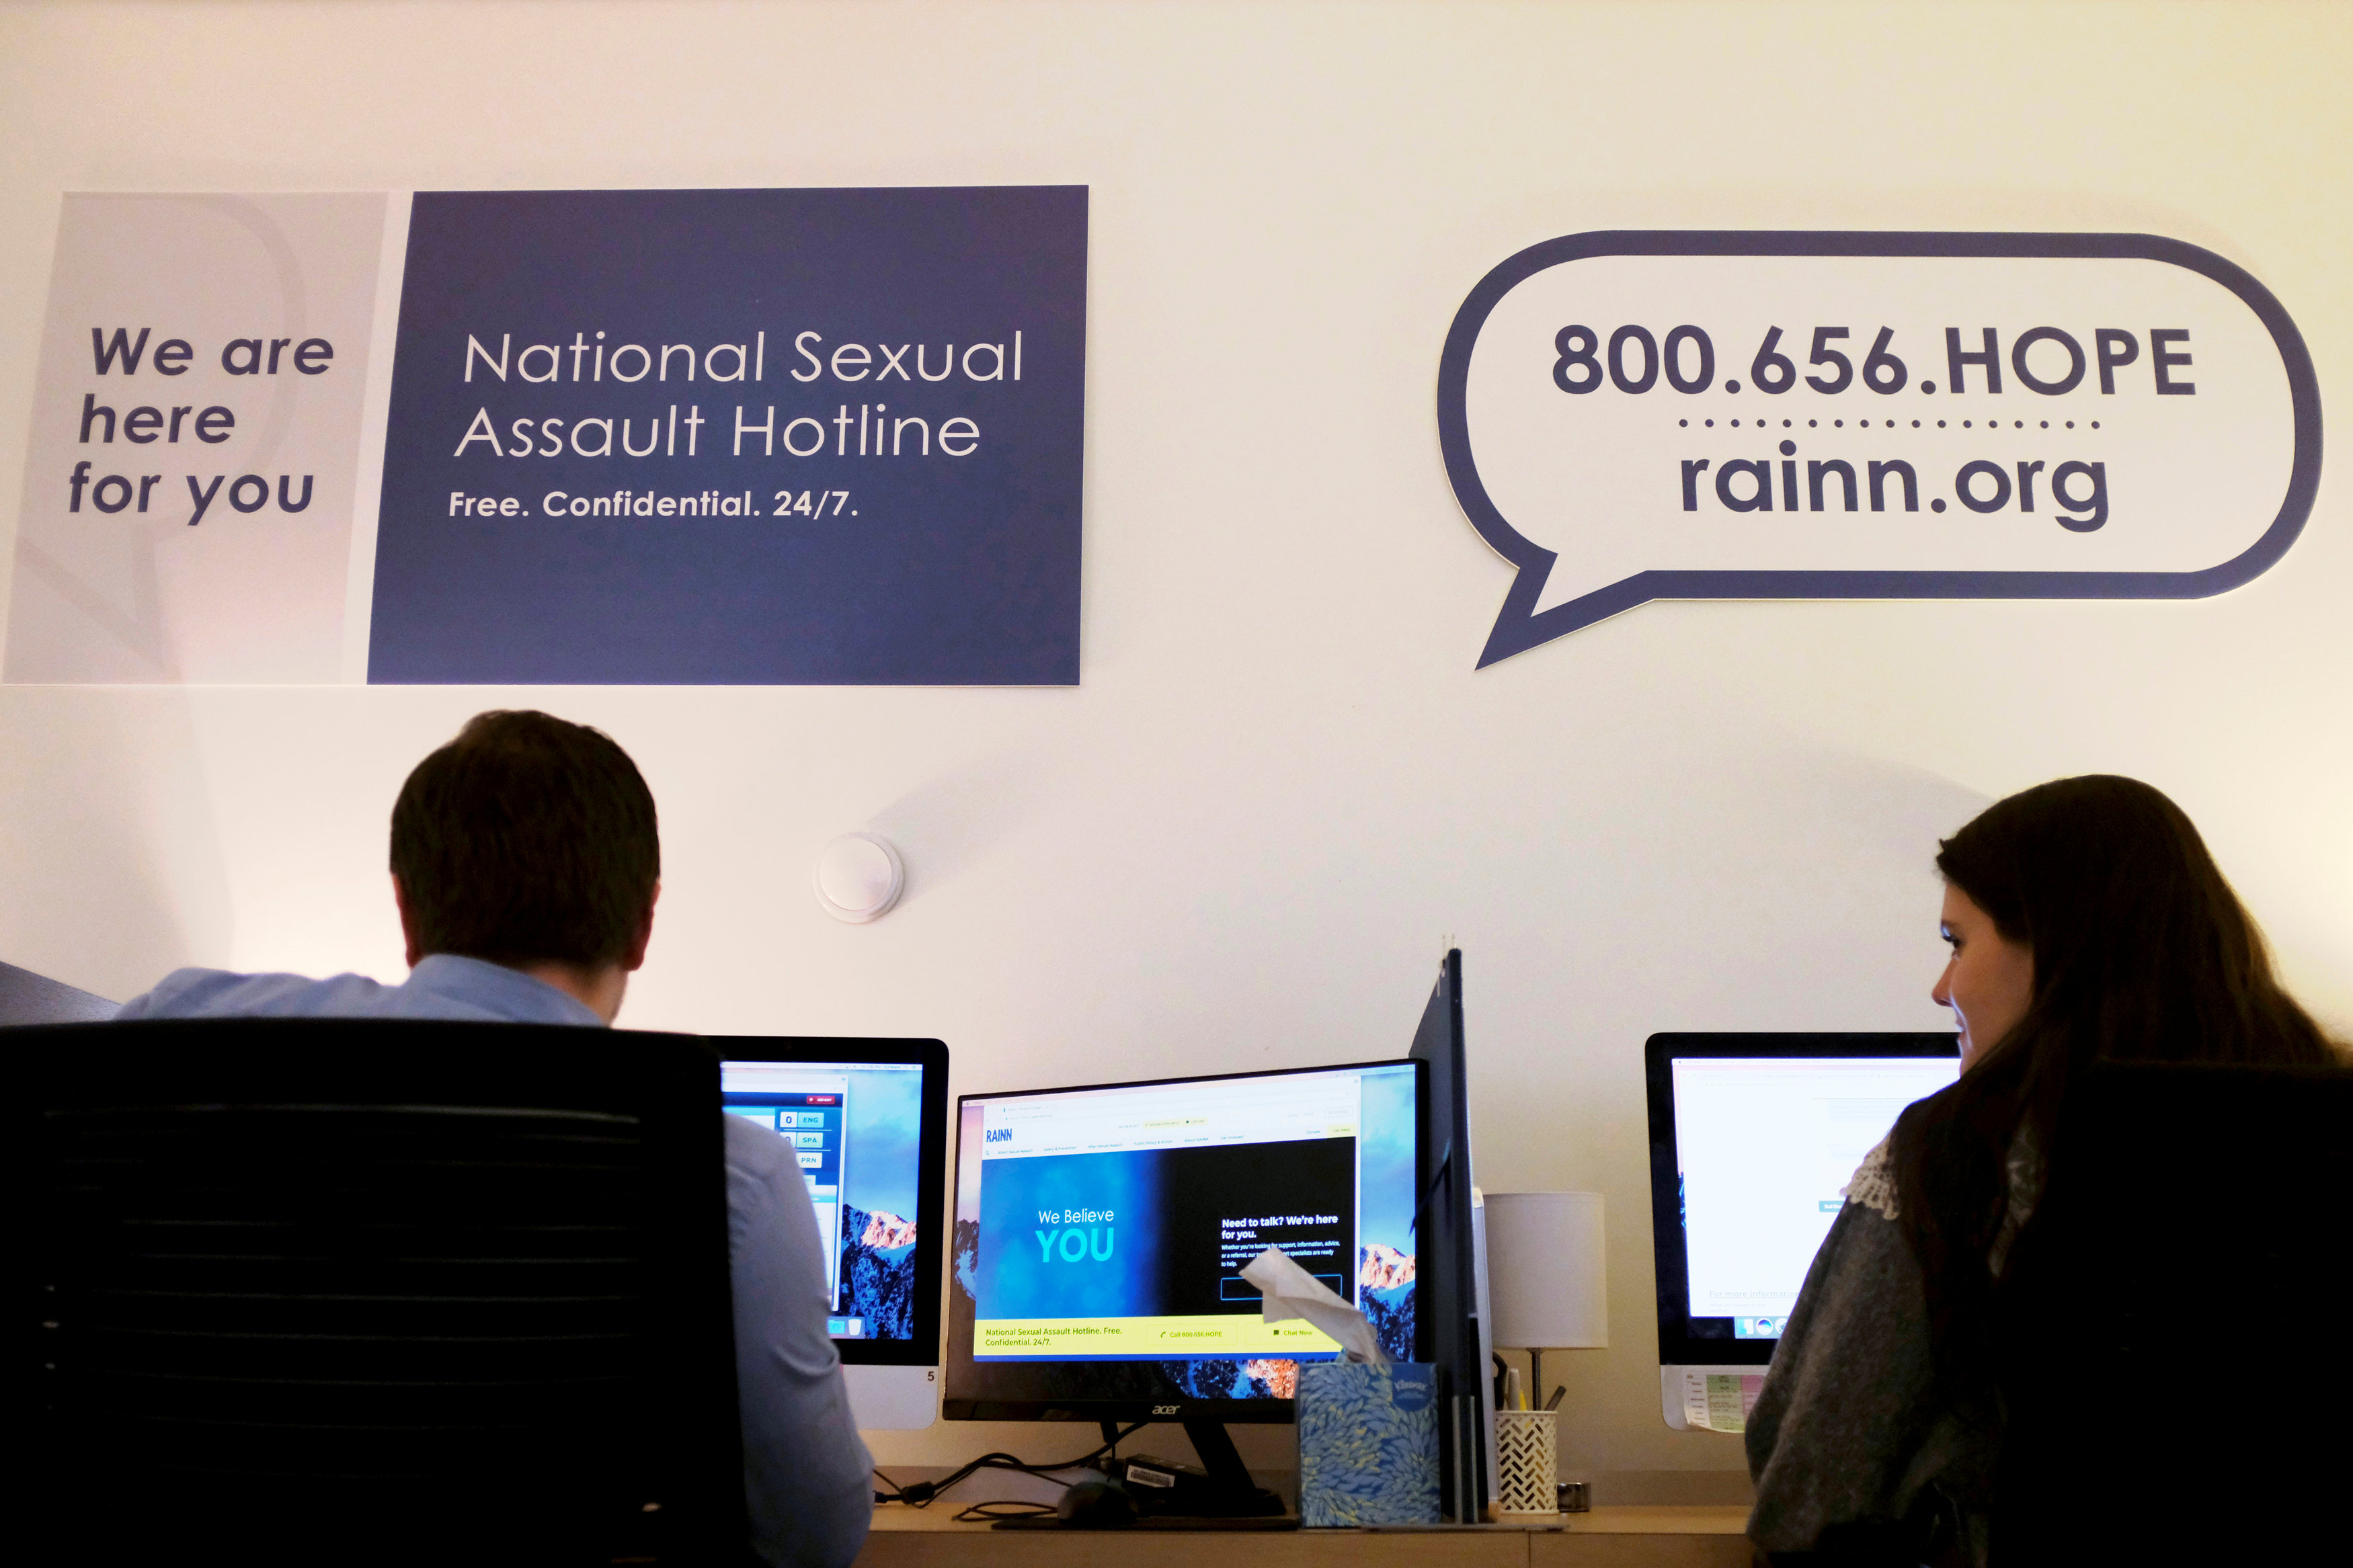 Volunteers on the National Sexual Assault Hotline work both over the phone and via web chat at the offices of the U.S.'s largest anti-sexual violence organization, the Rape Abuse Incest National Network, in Washington, U.S., January 12, 2018.